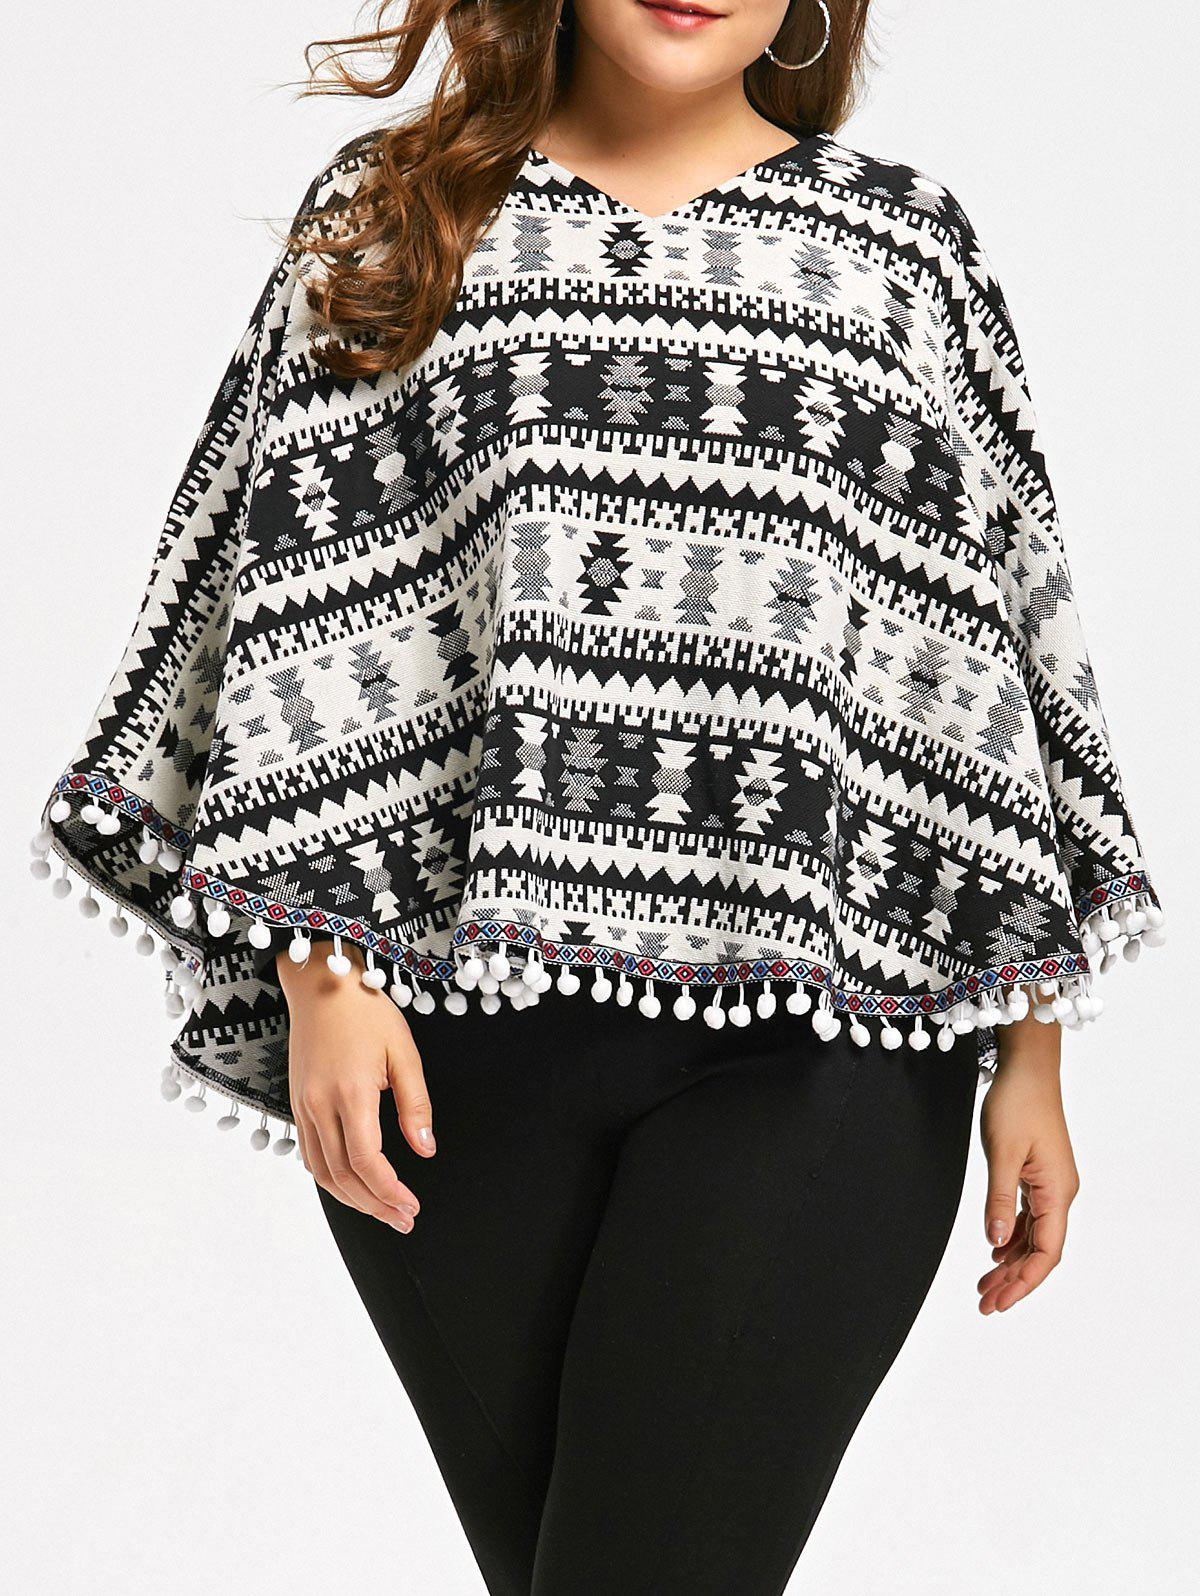 Plus Size Tassels Geometry Cape Sweater - COLORMIX 5XL